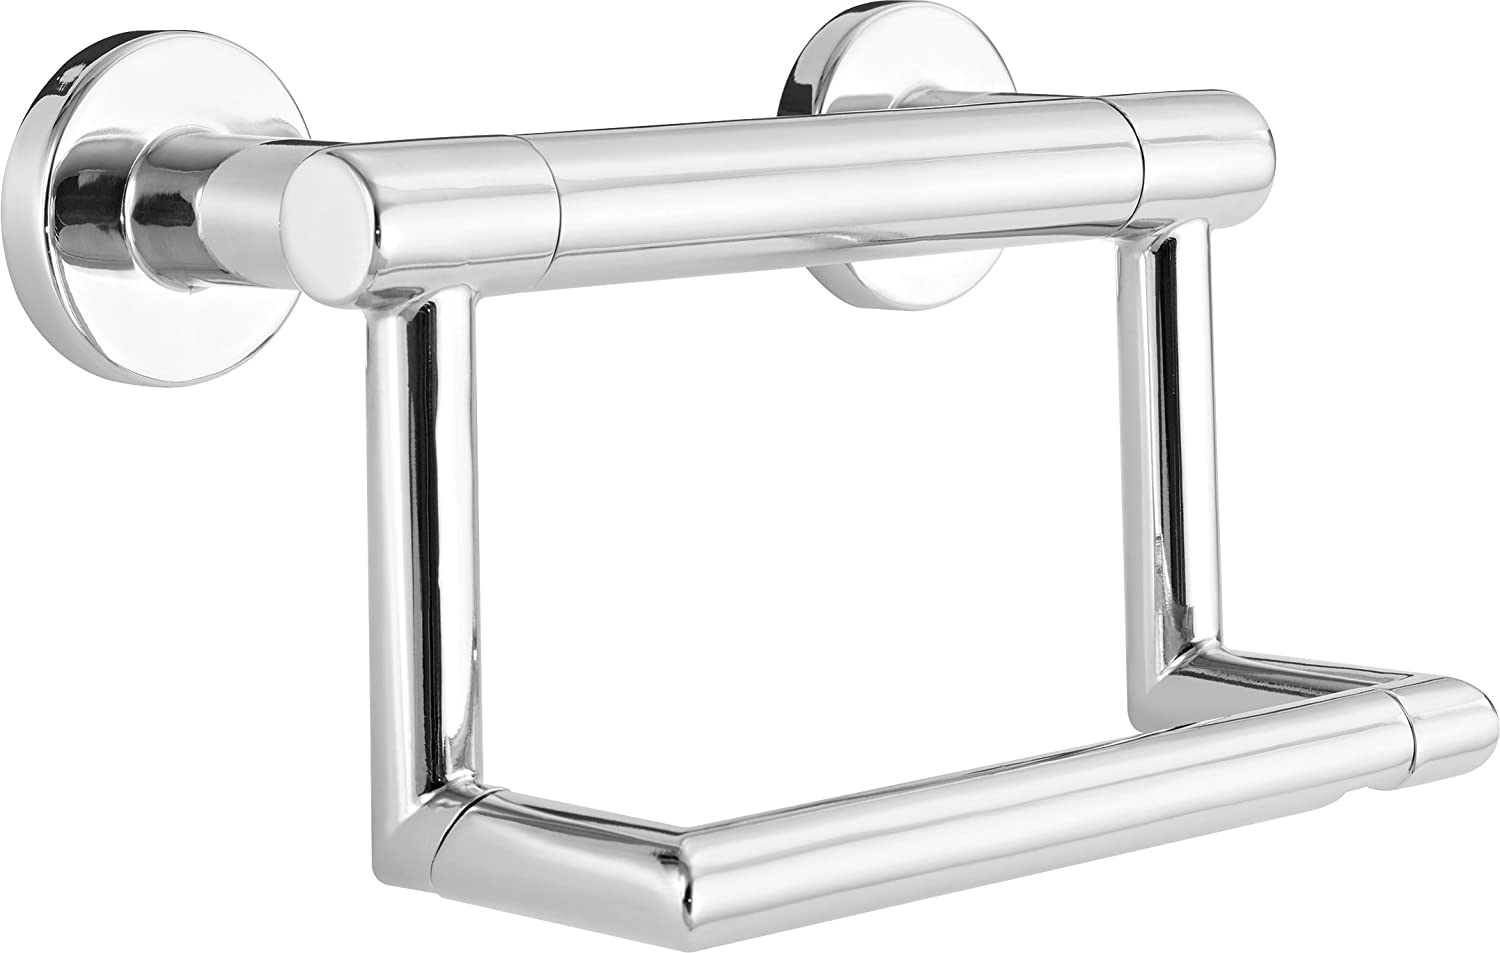 Delta Faucet 41550 Contemporary Pivoting Tissue Holder / Assist Bar, Polished Chrome